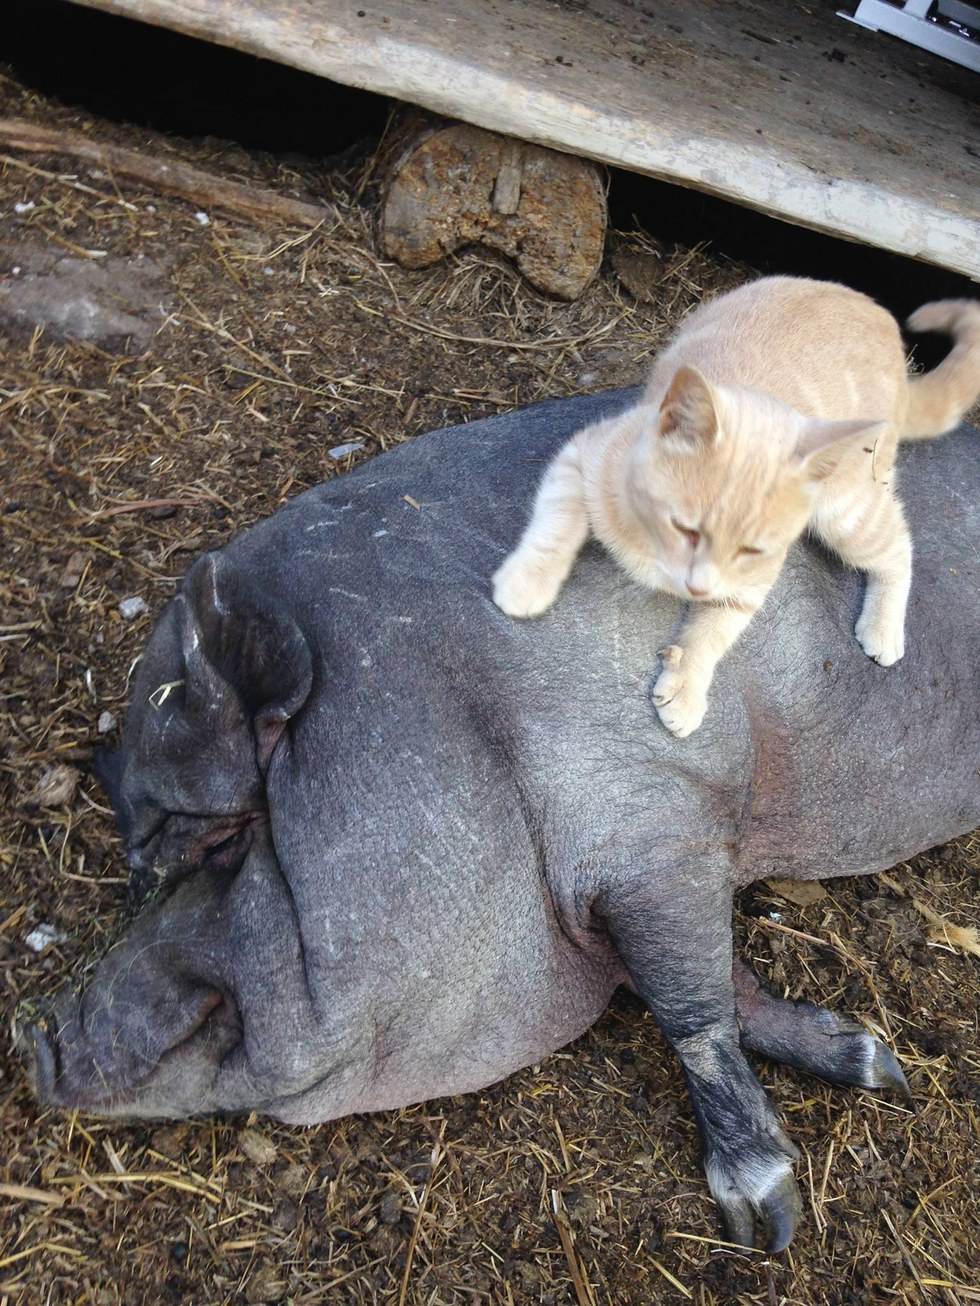 Cat Befriends Pig